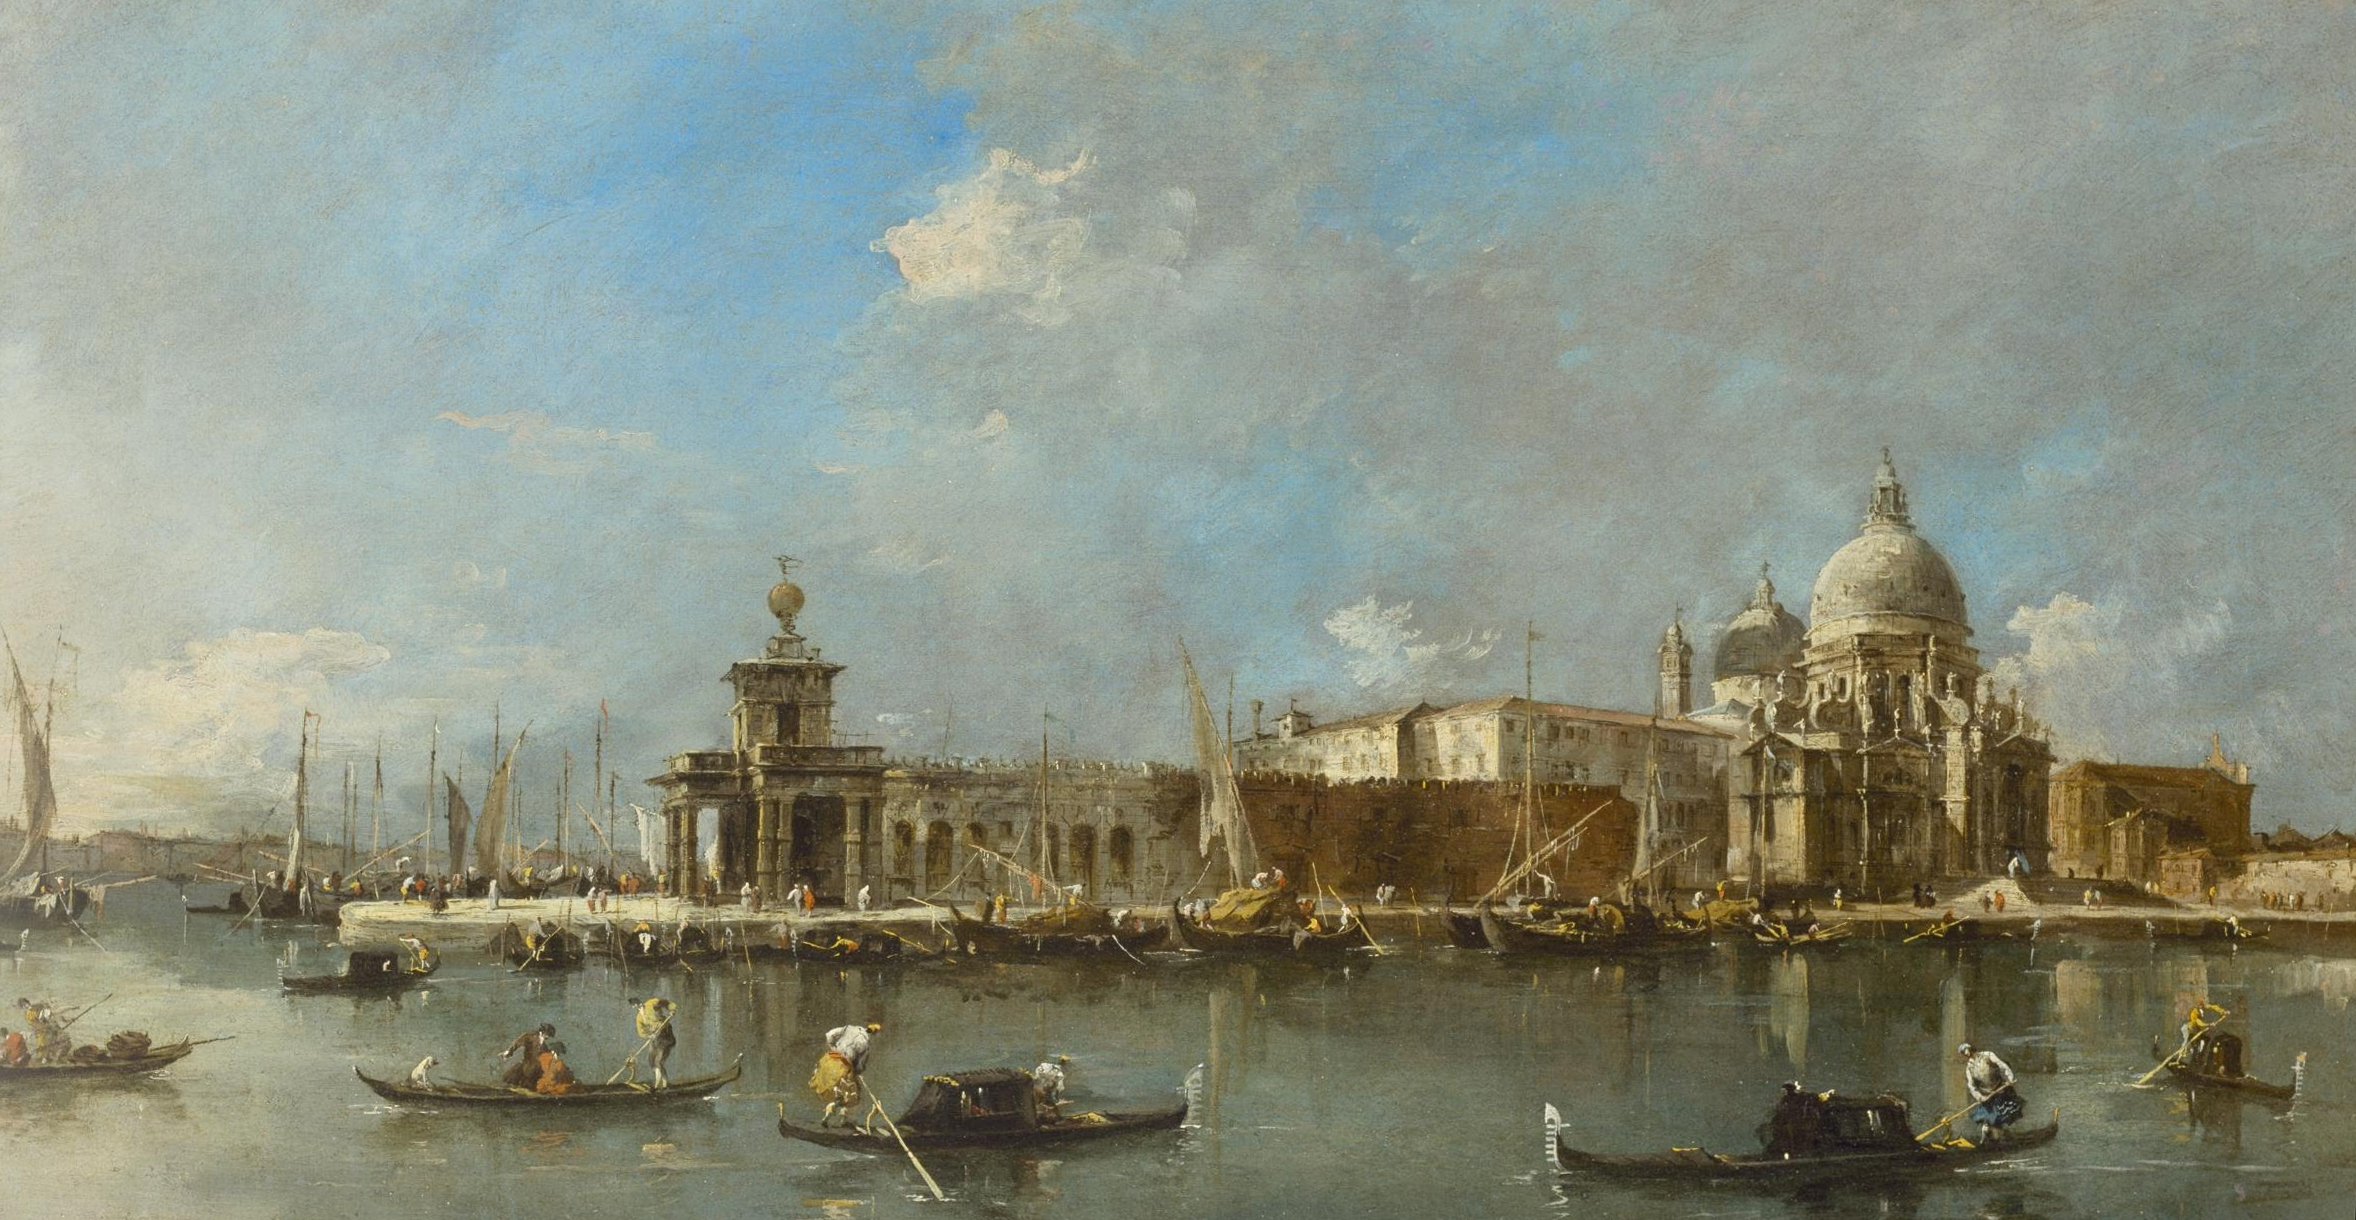 Francesco Guardi – circa 1785